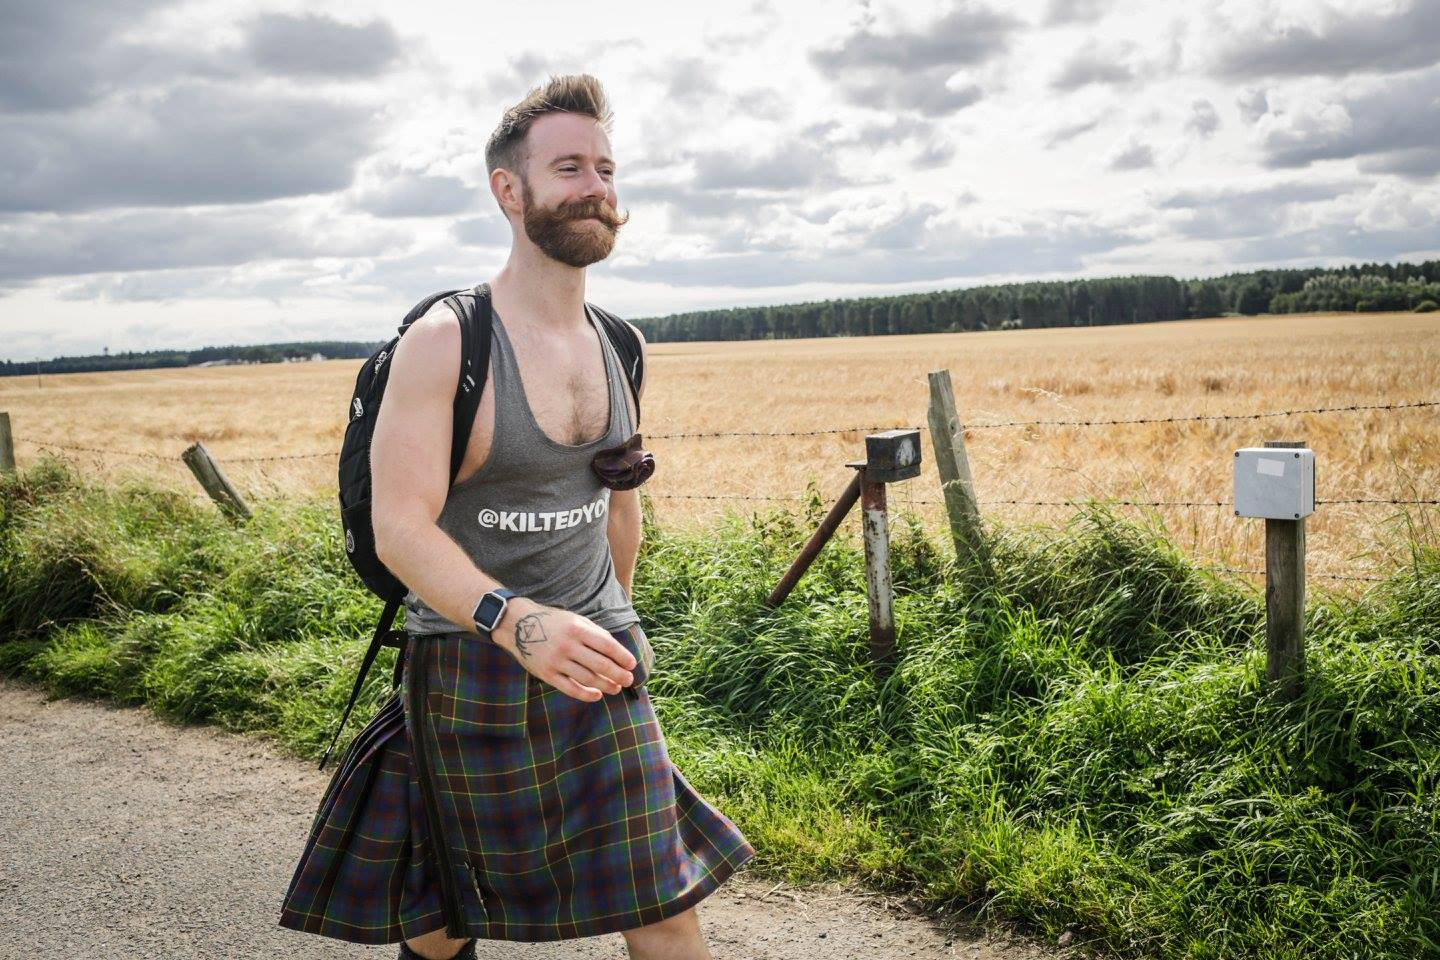 Kiltwalkers and The Hunter Foundation have raised and distributed £2.5 million in 2020 so far